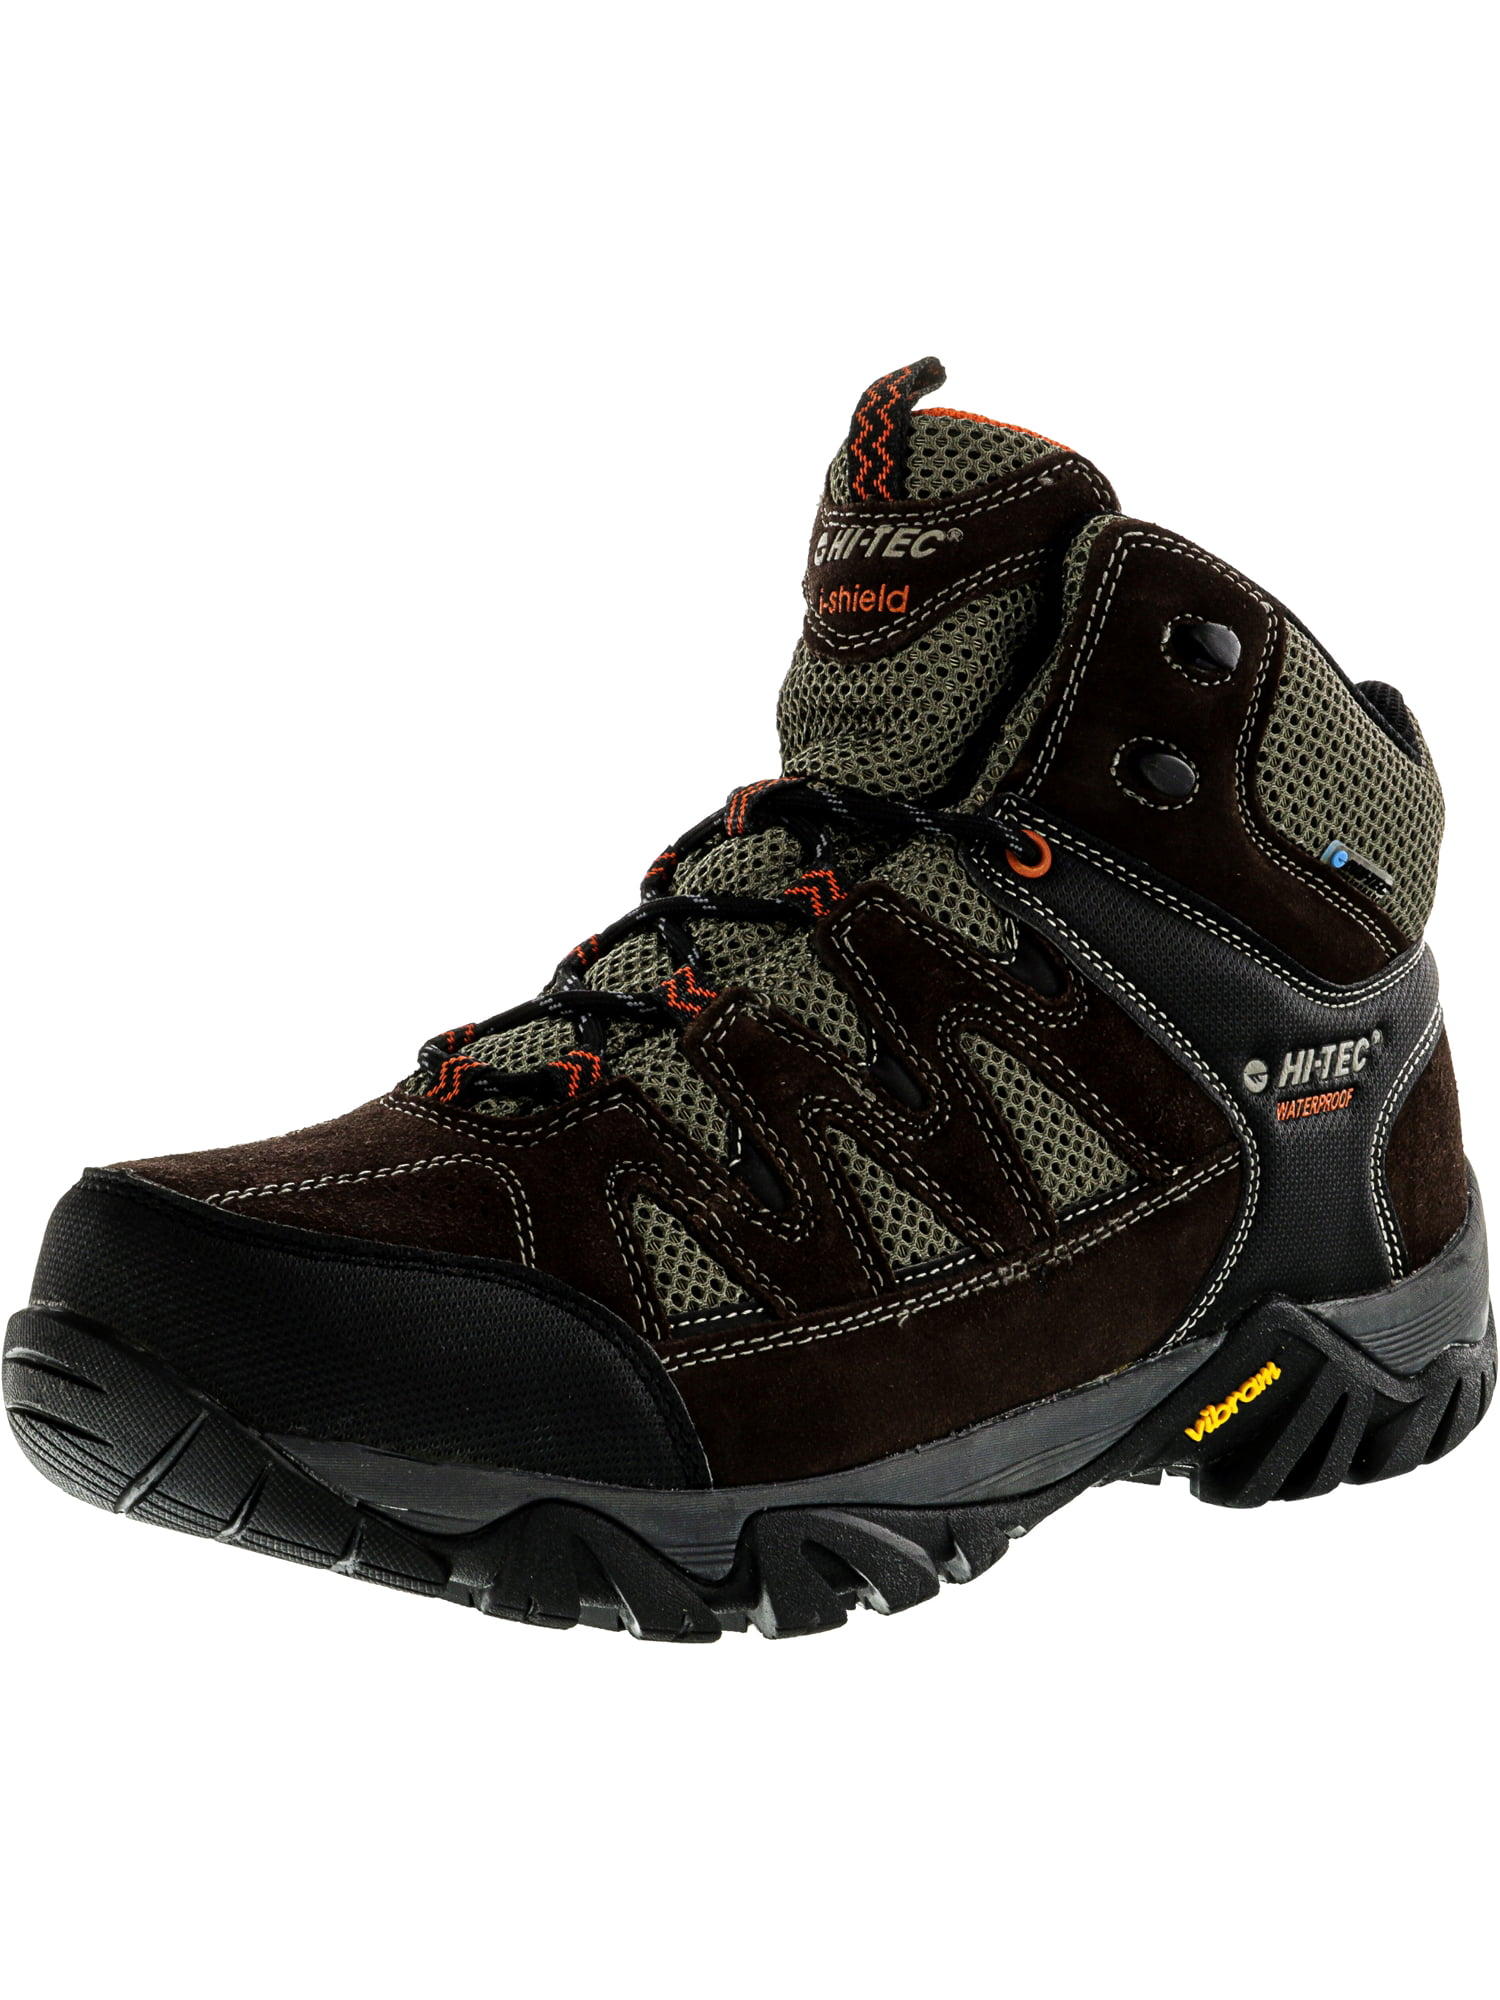 Hi-Tec Men's Sonorous Mid I Wp Chocolate   Red Rock Ankle-High Hiking Shoe 12M by Hi-Tec